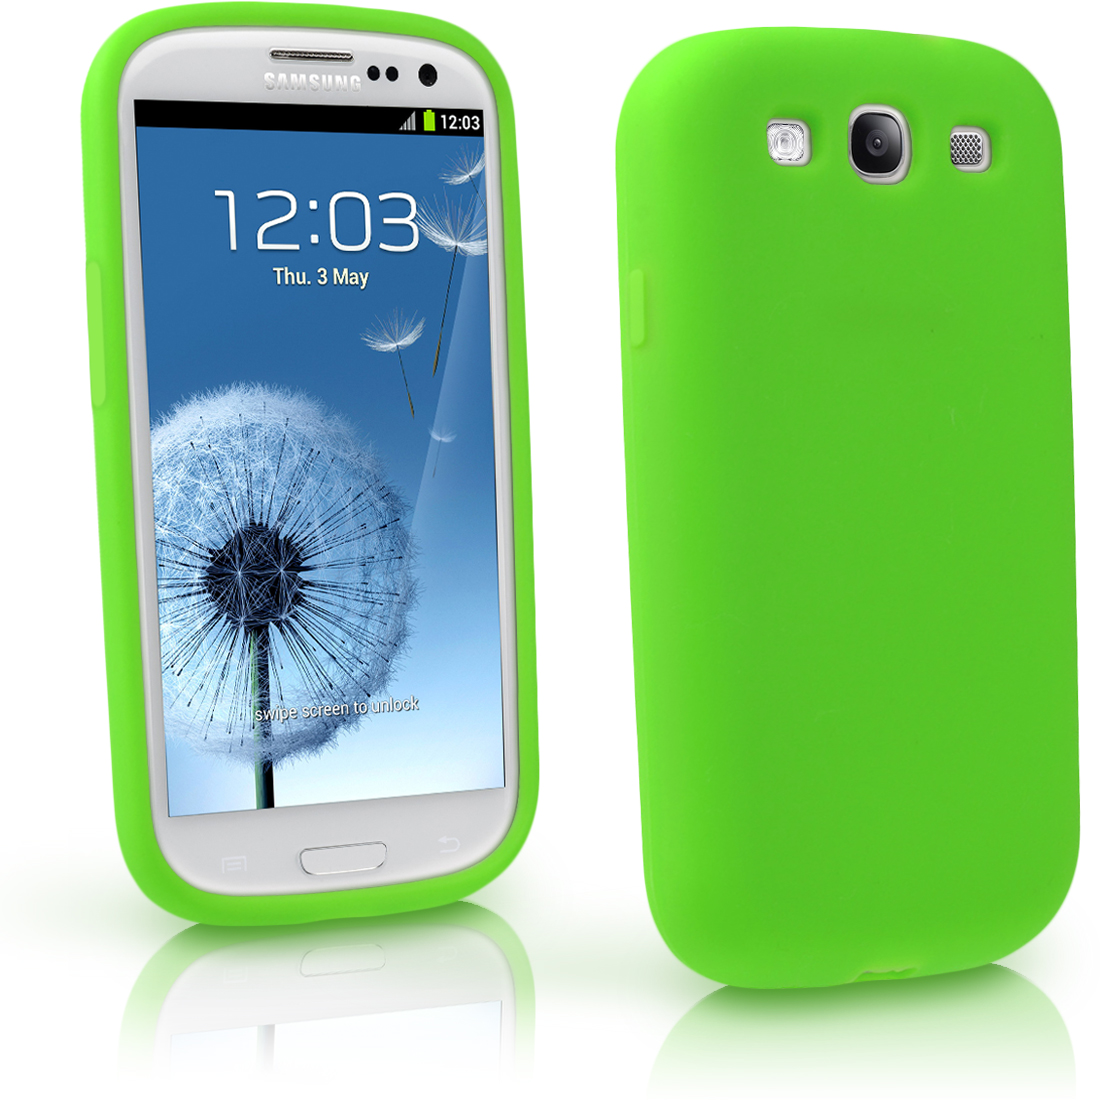 iGadgitz Green Silicone Skin Case Cover for Samsung Galaxy S3 III i9300 + Screen Protector